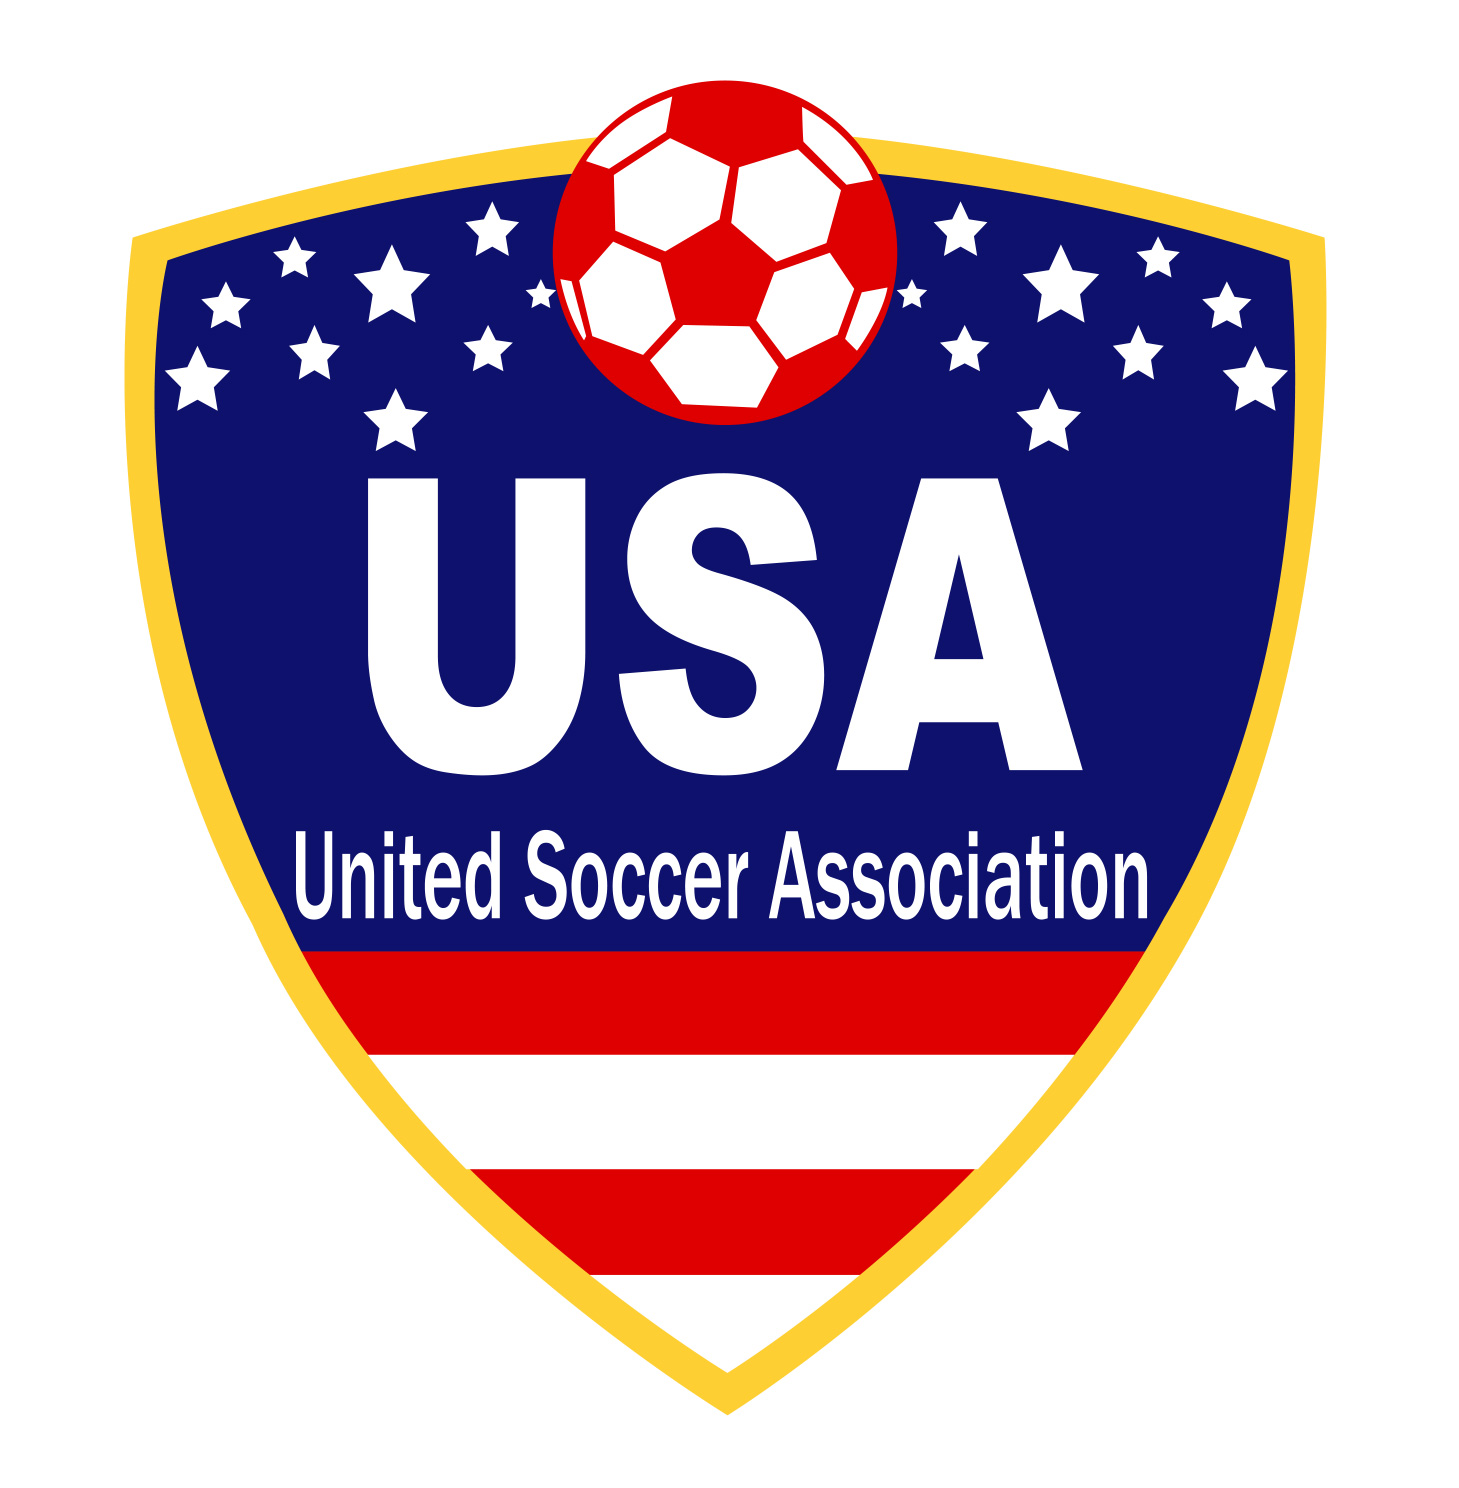 United Soccer Association